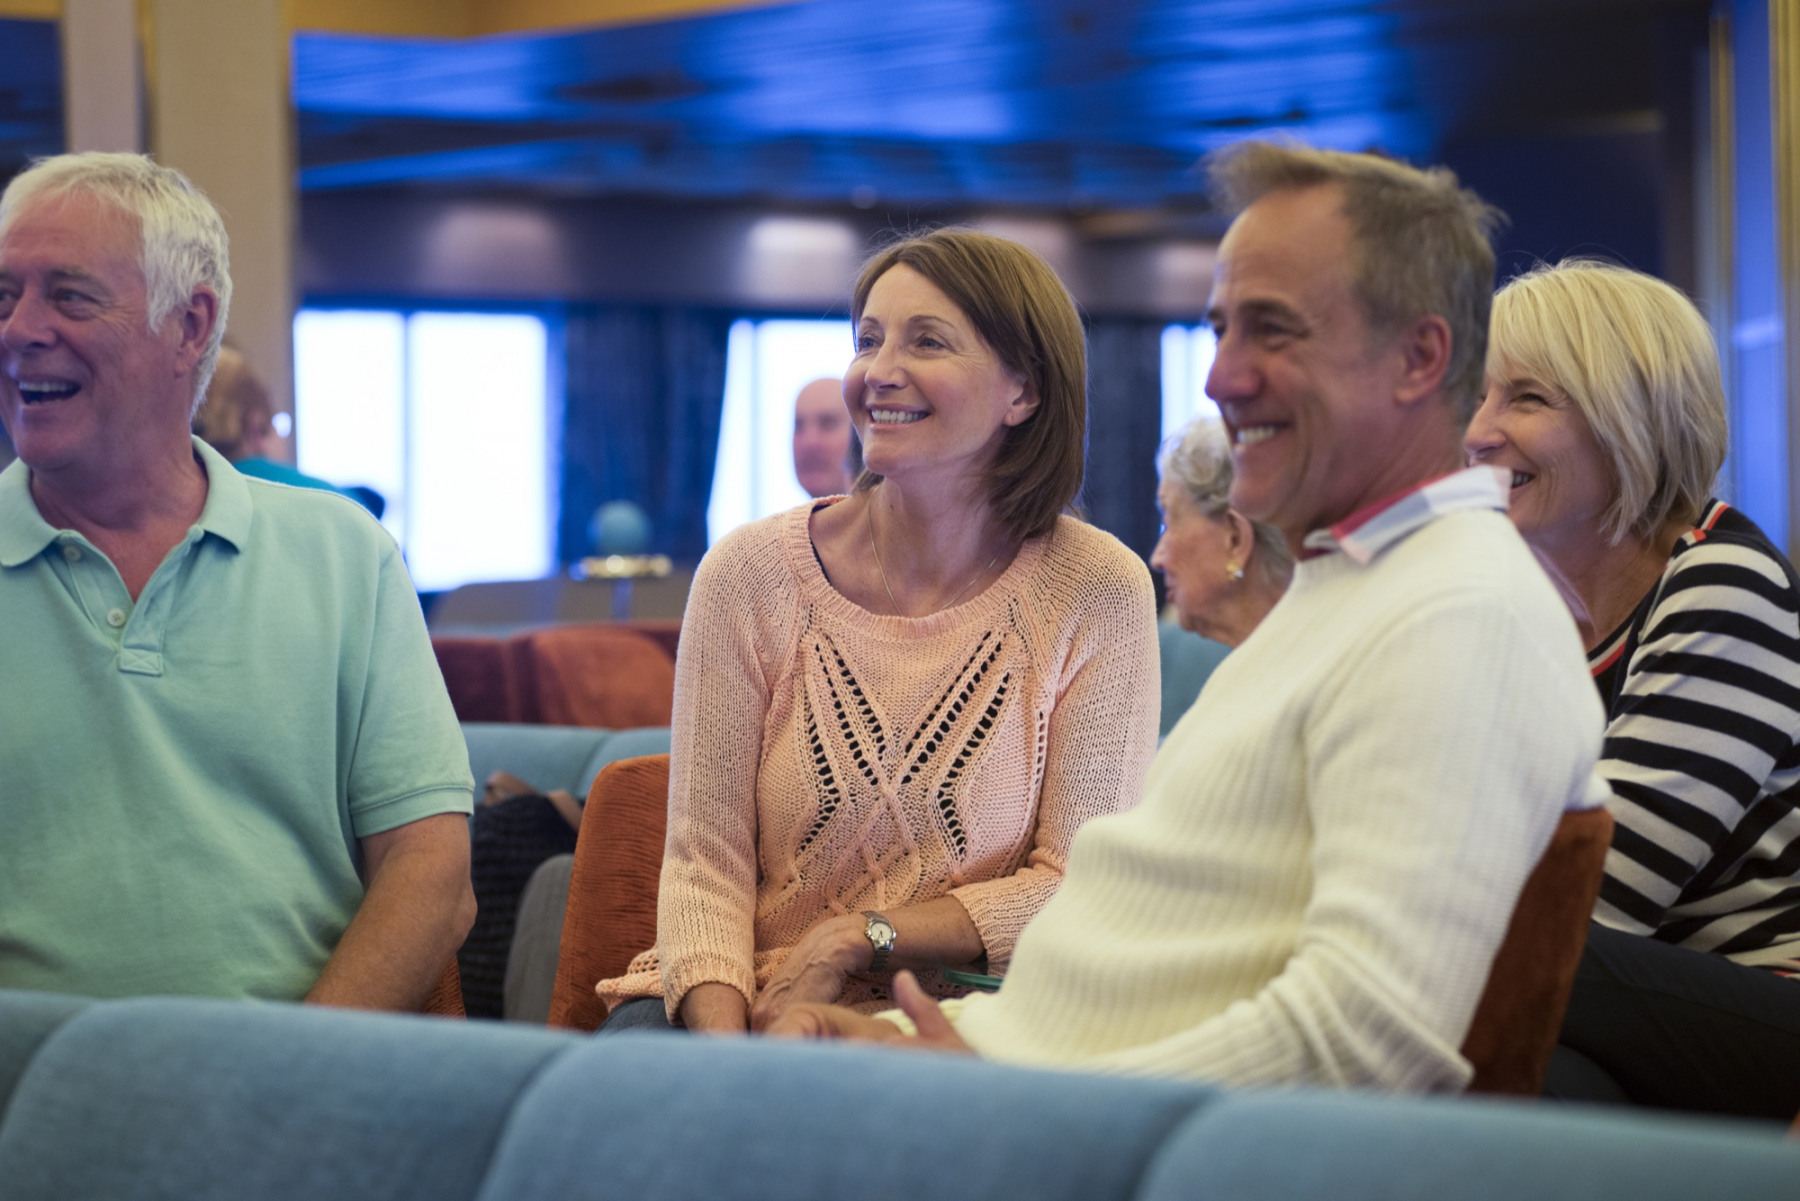 Fred Olsen Cruise Line Balmoral Interior Lectures.jpg